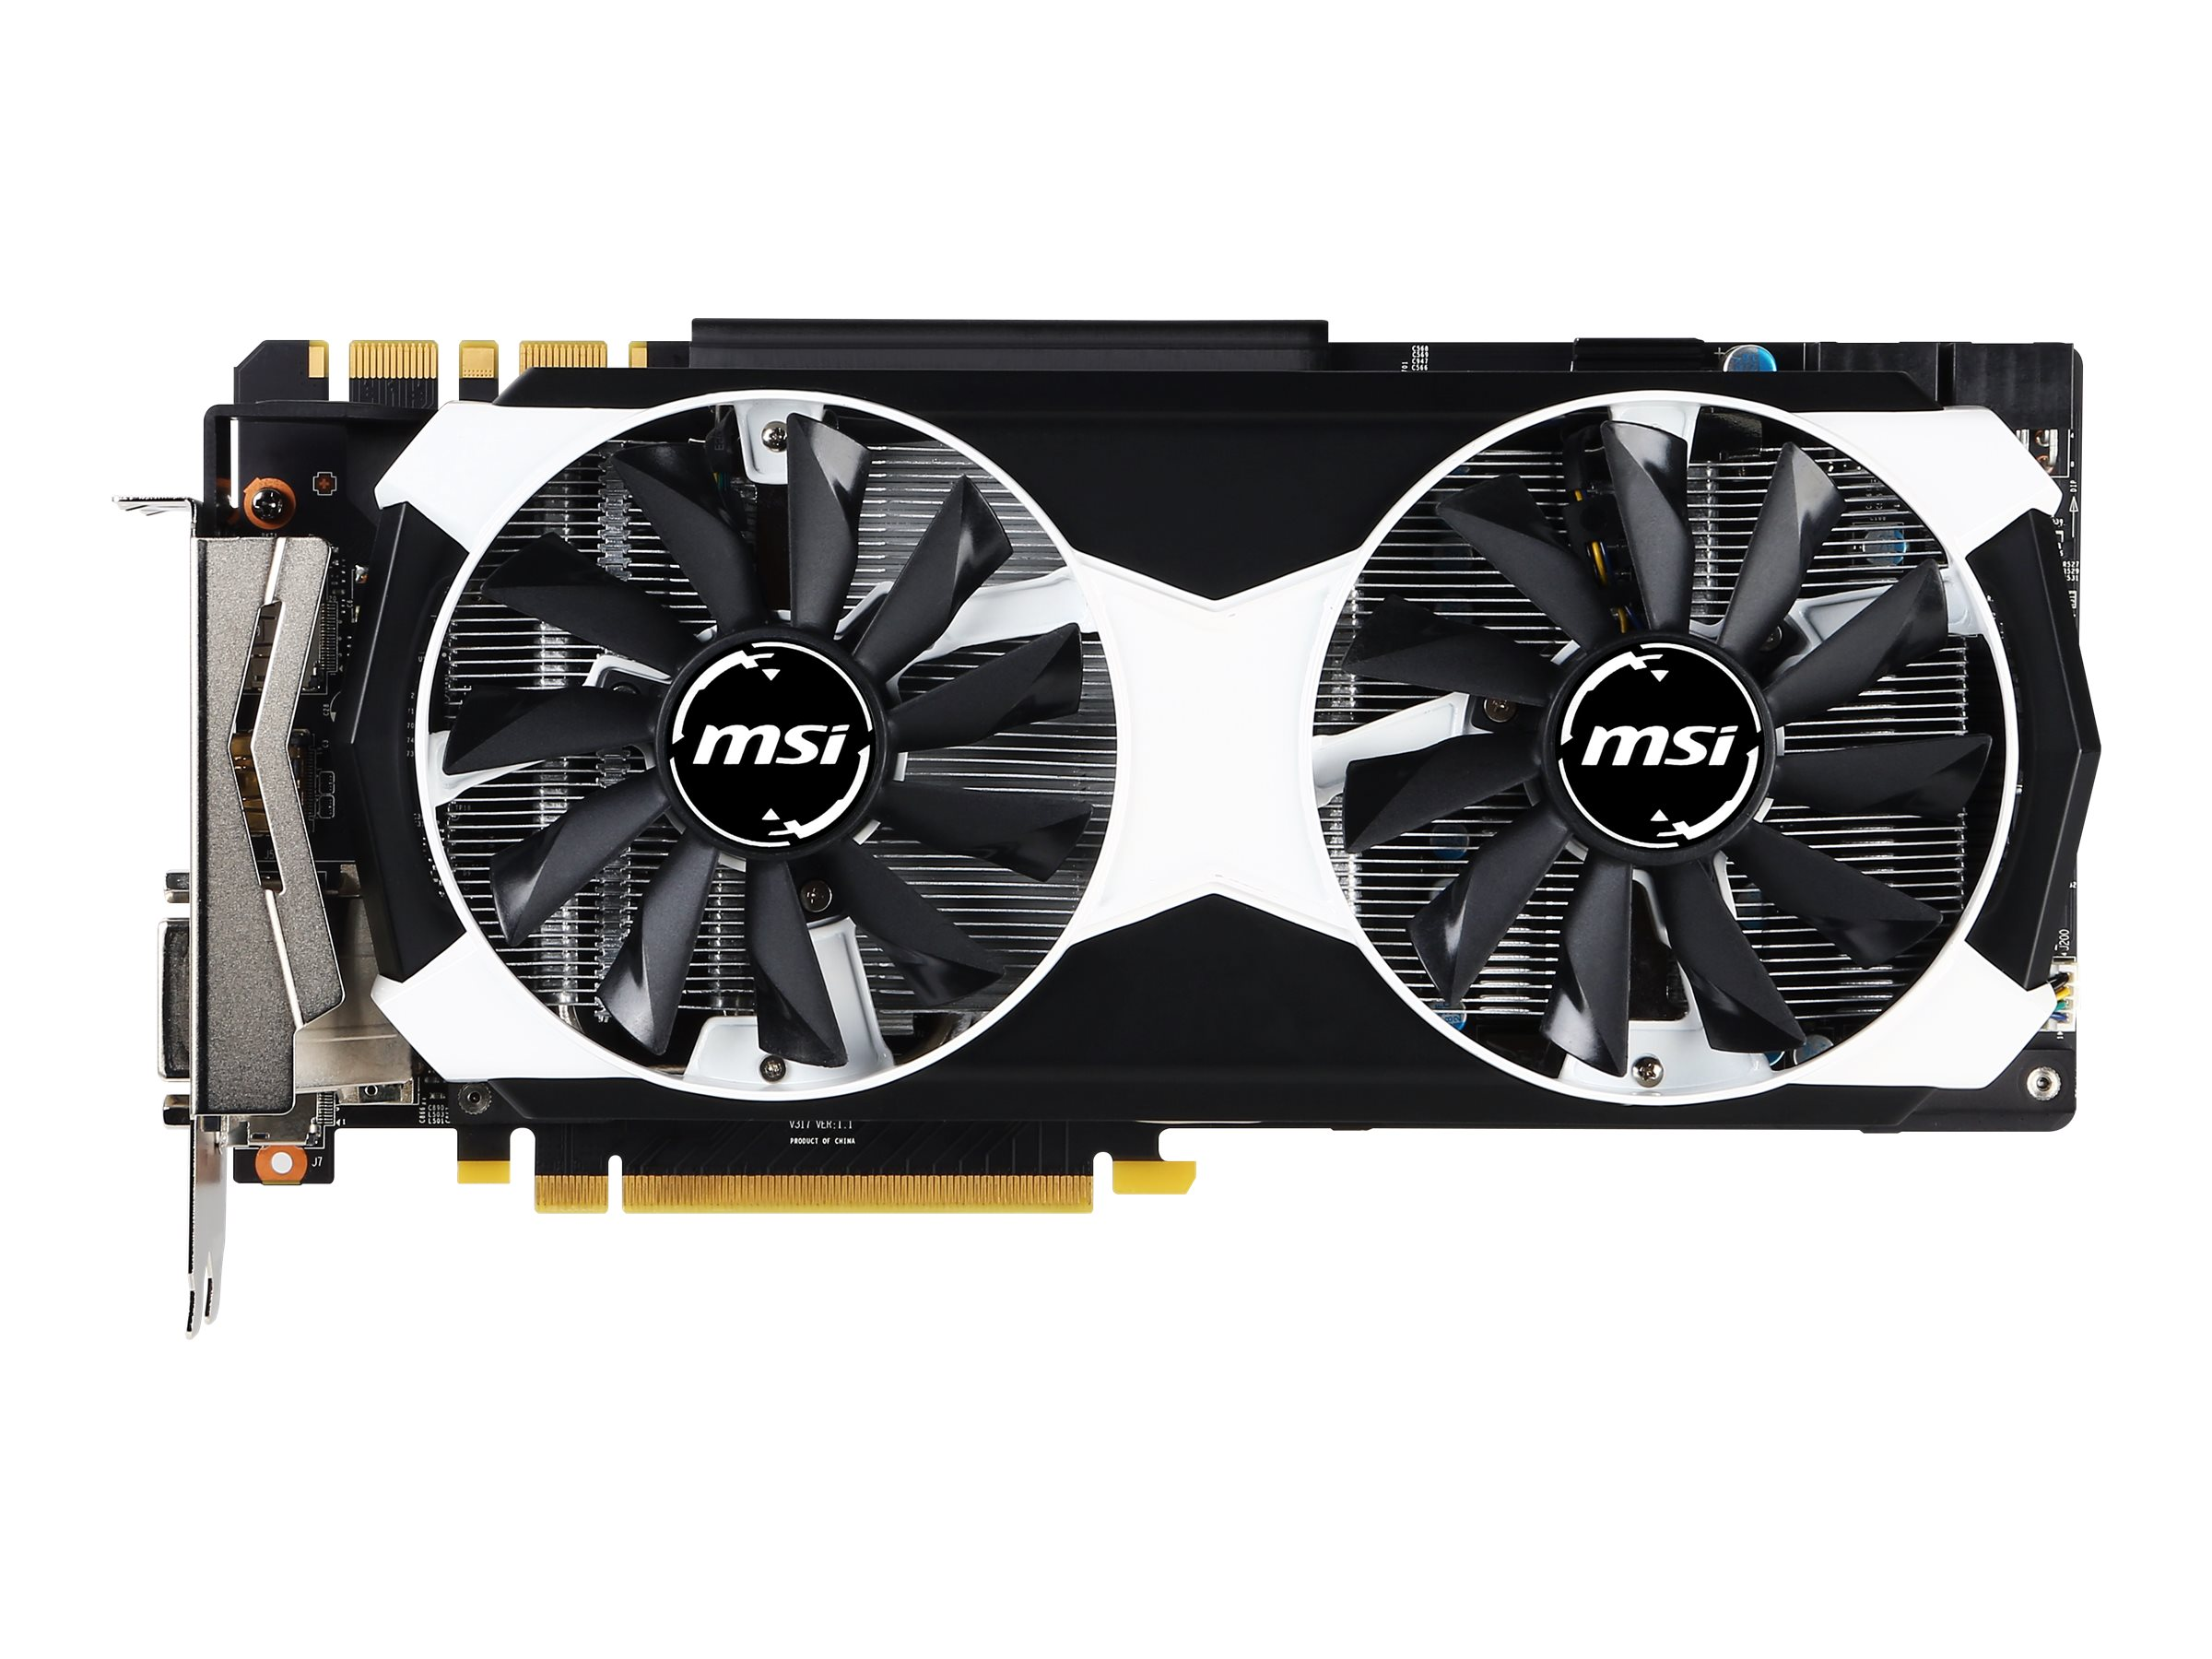 Microstar GeForce GTX 980 PCIe 3.0 x16 Overclocked Graphics Card, 4GB GDDR5, GTX 980 4GD5T OC, 30623508, Graphics/Video Accelerators